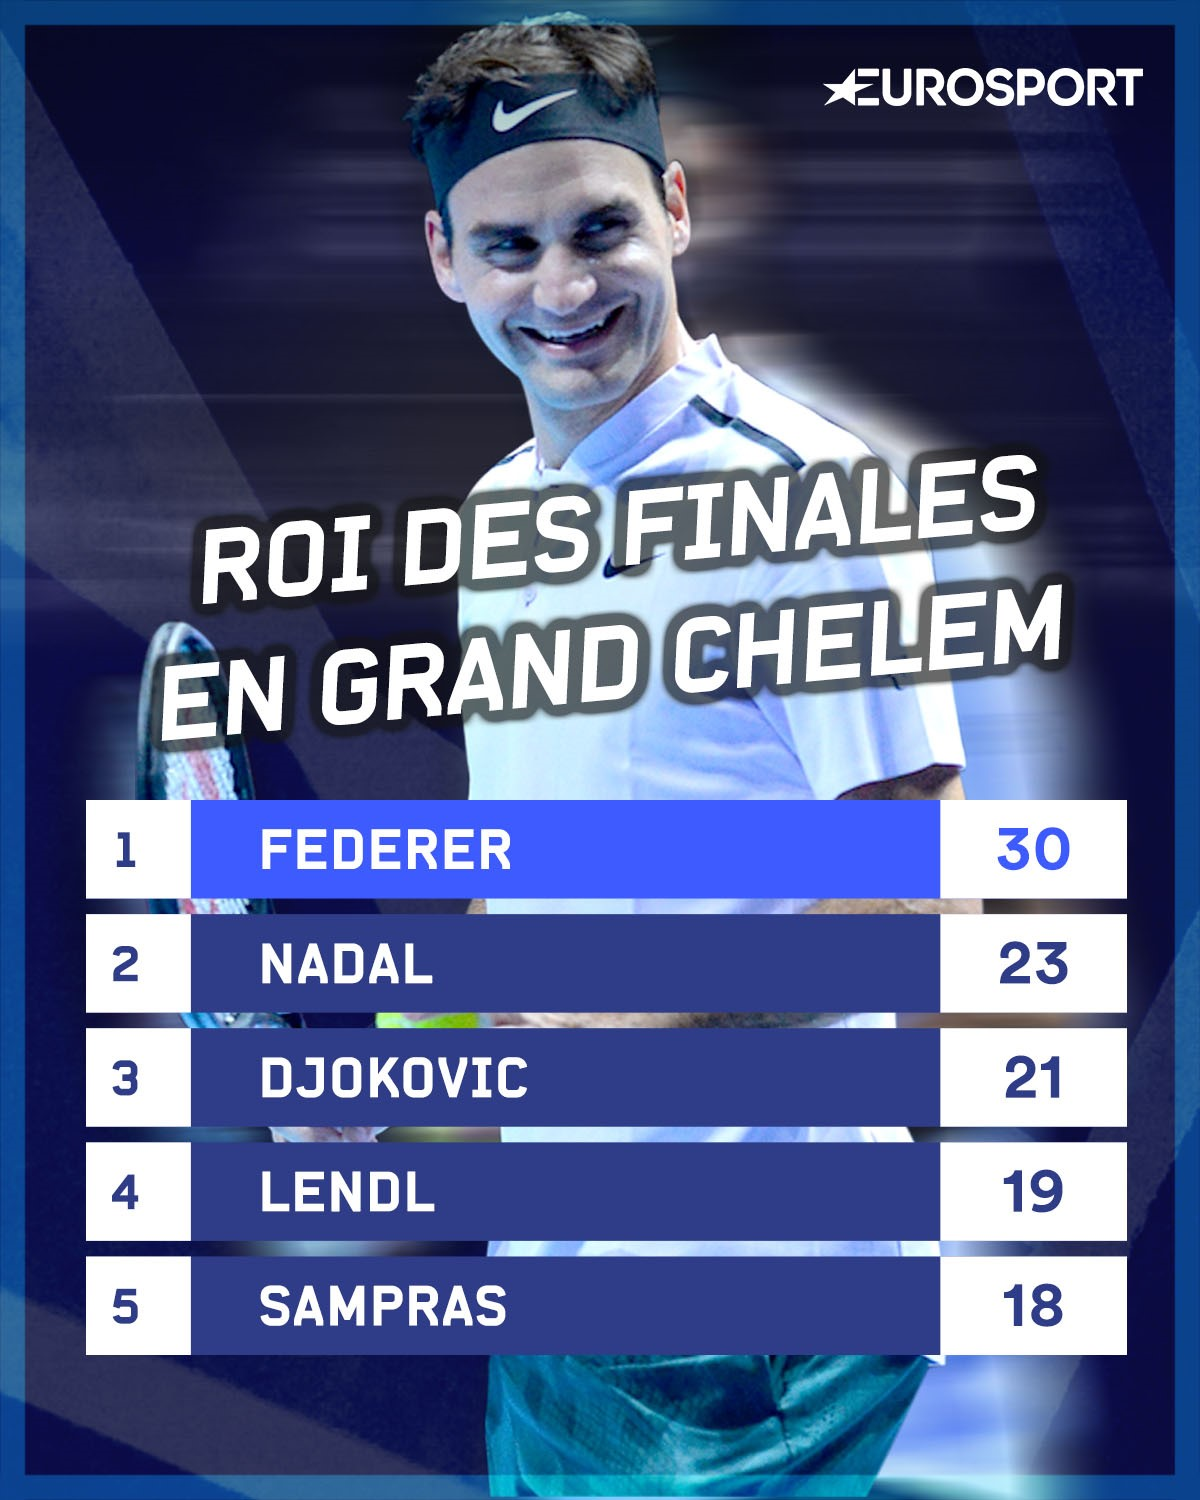 federer record grand chelem final